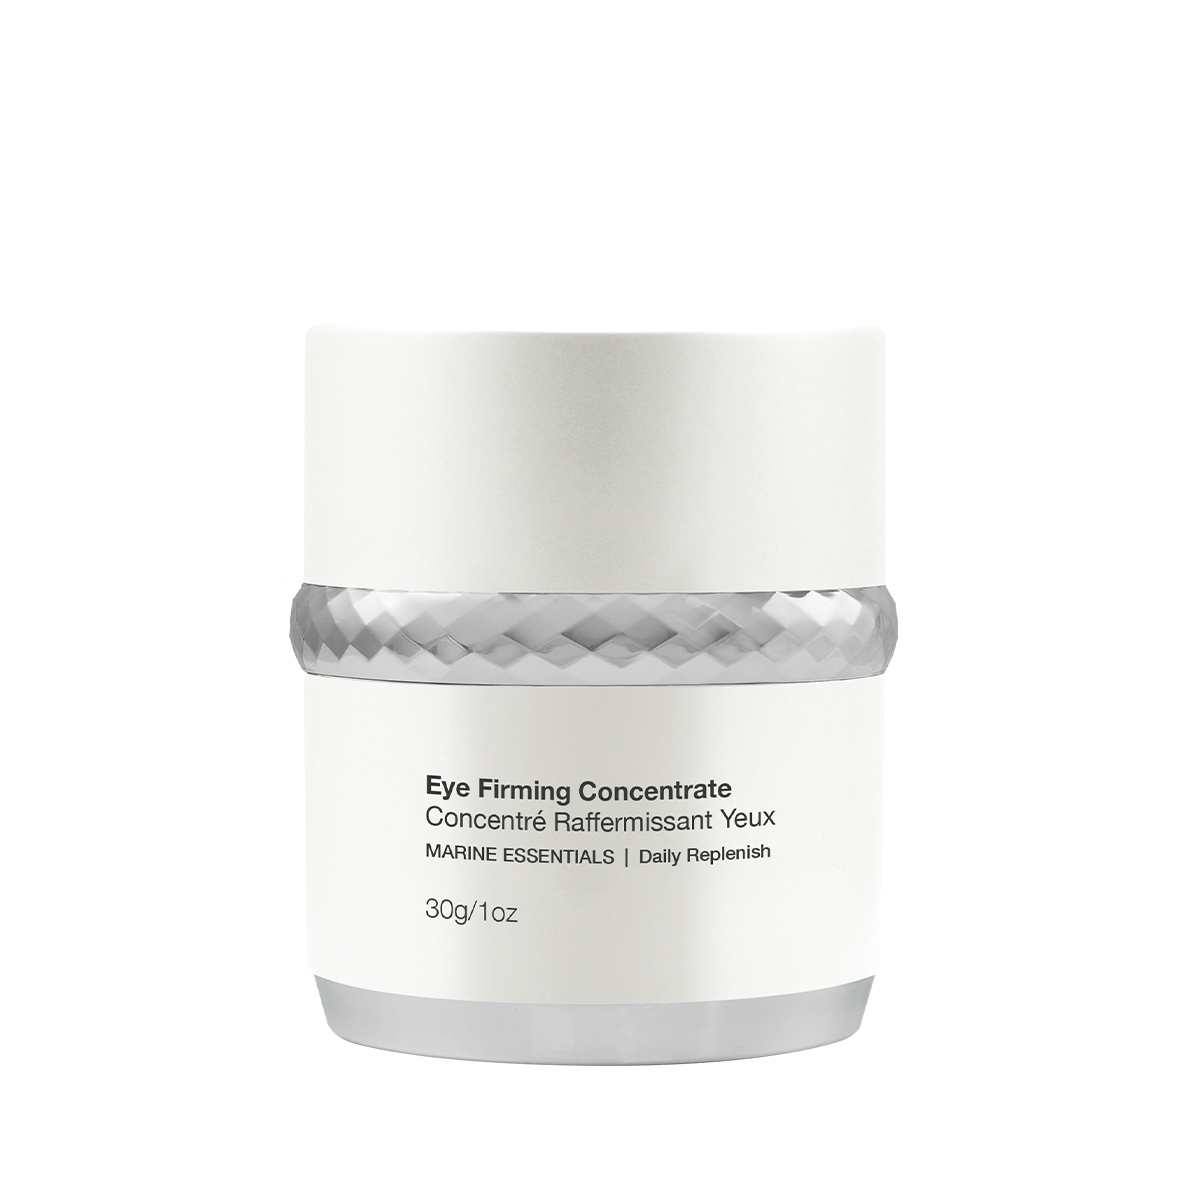 Eye Firming Concentrate back